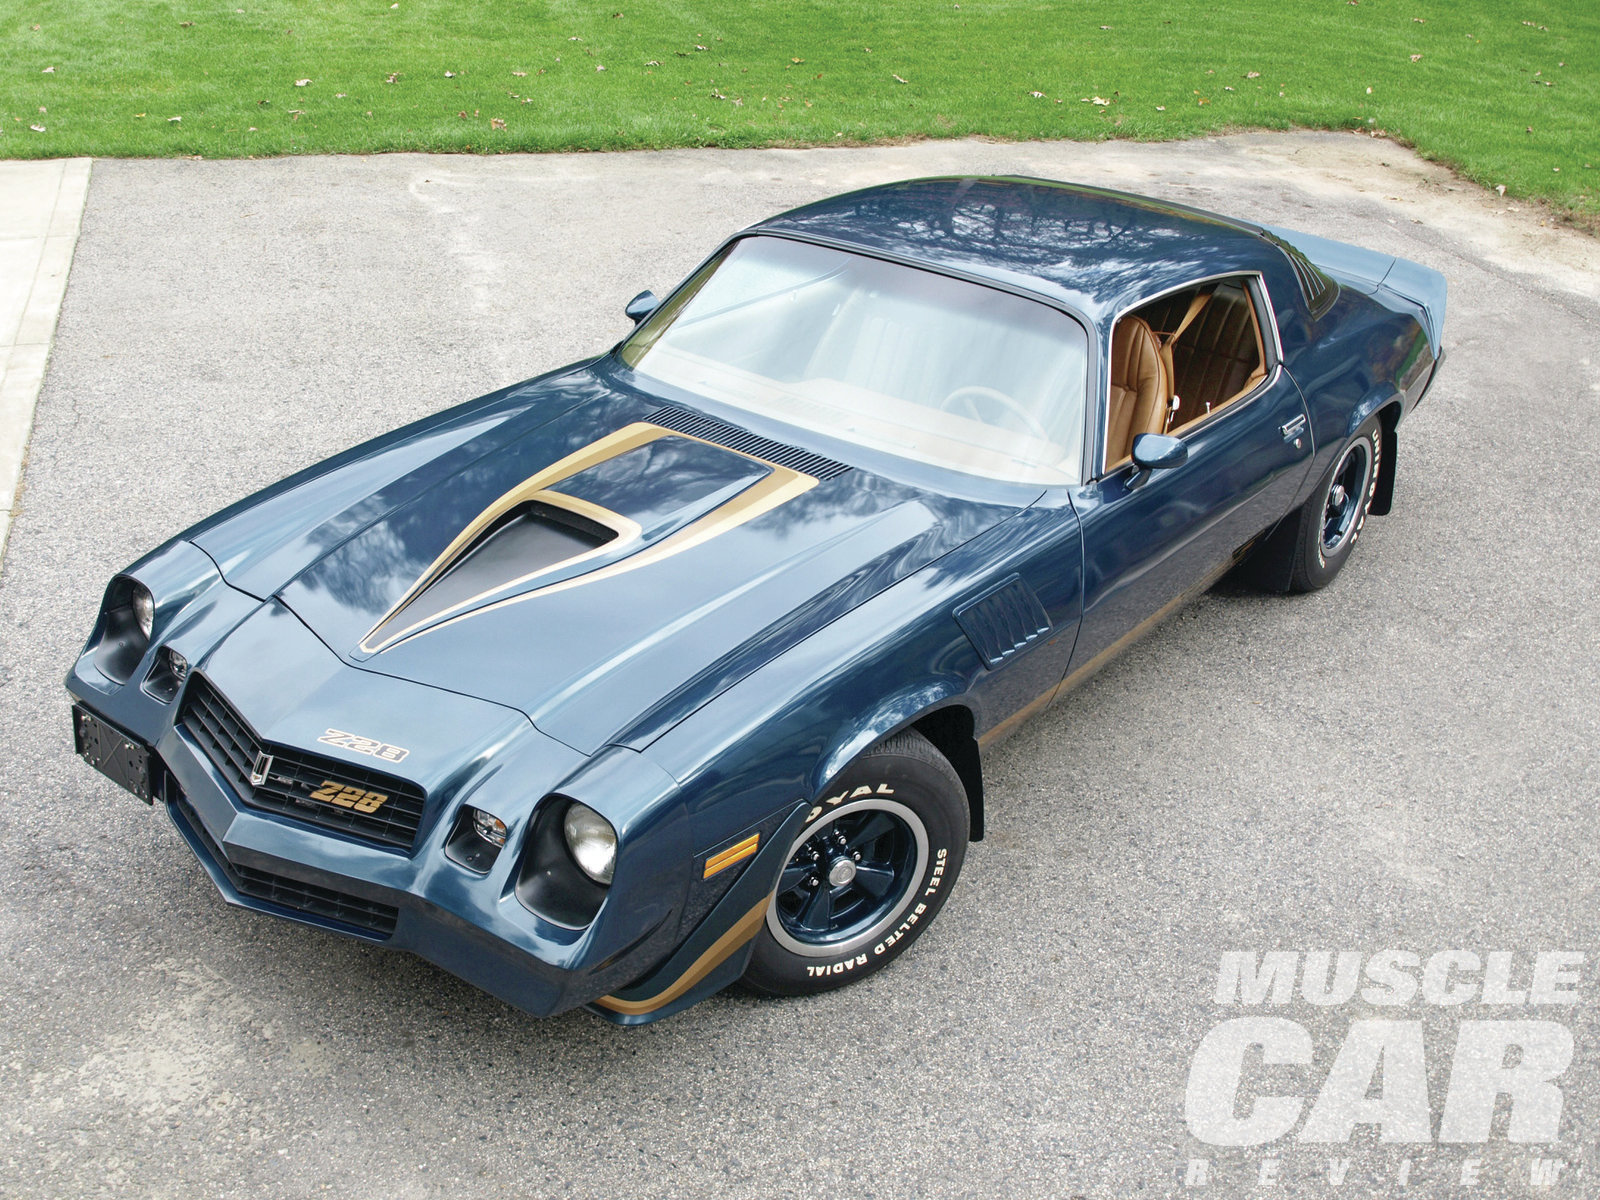 Chevrolet Camaro Z28 Coupe 1979